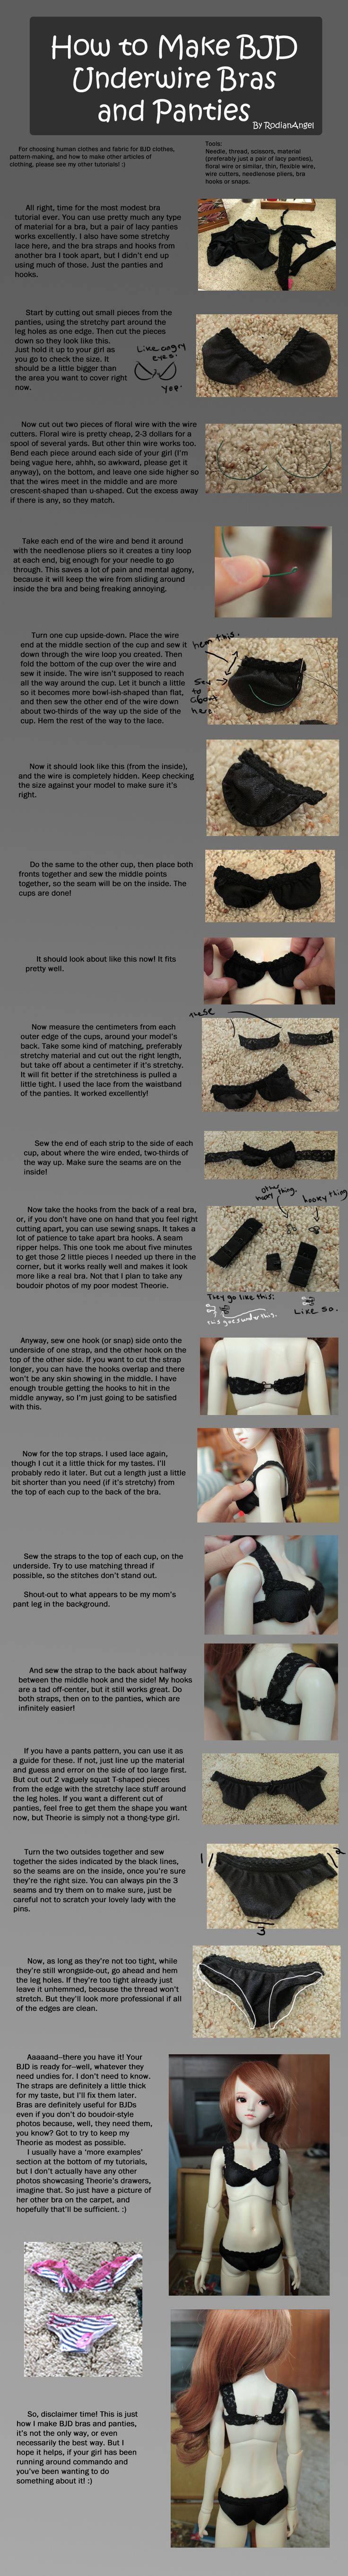 How to Make BJD Underwire Bras and Panties by RodianAngel.deviantart.com on @deviantART